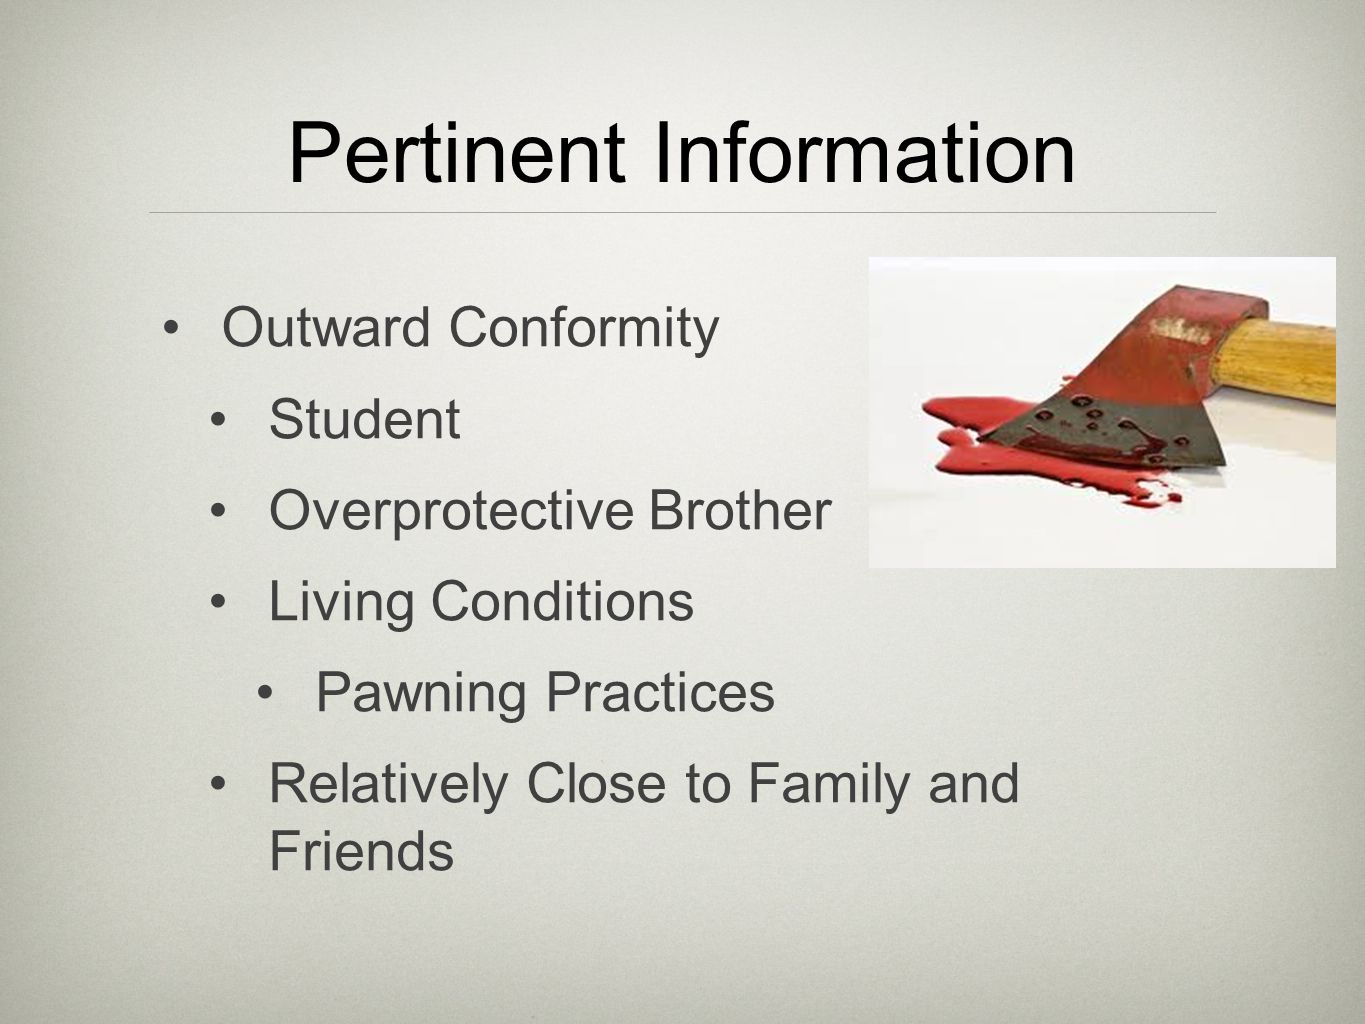 Pertinent Information Outward Conformity Student Overprotective Brother Living Conditions Pawning Practices Relatively Close to Family and Friends